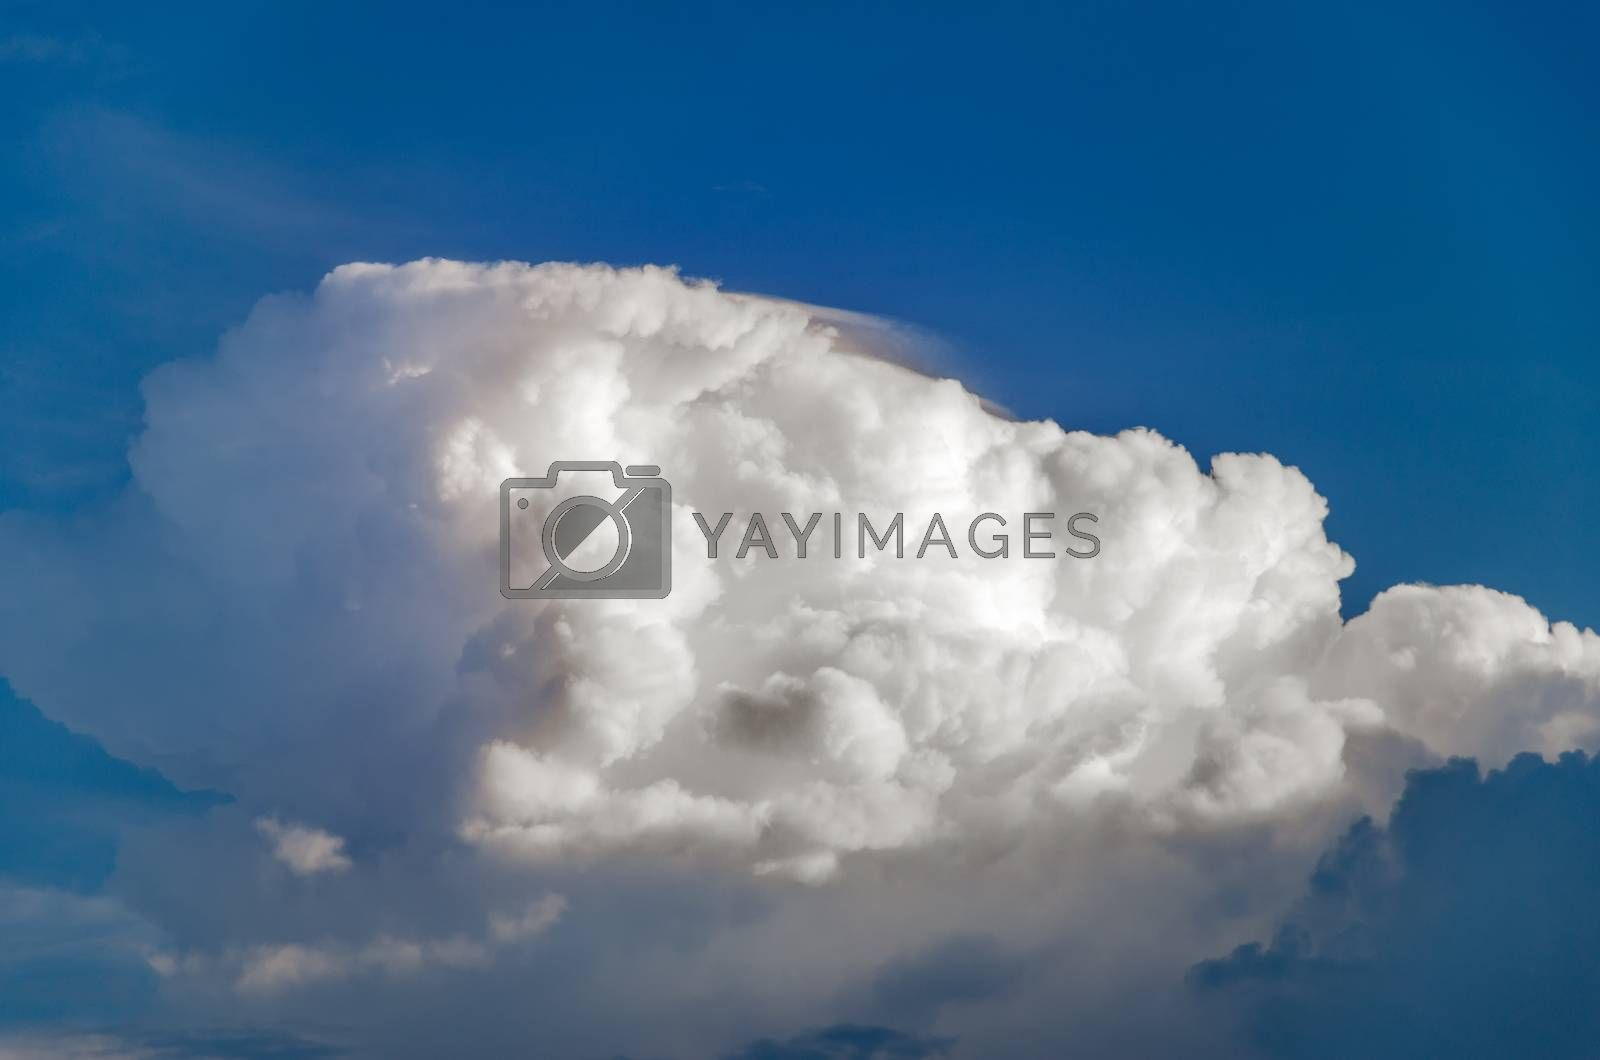 Clouds details and deep blue sky